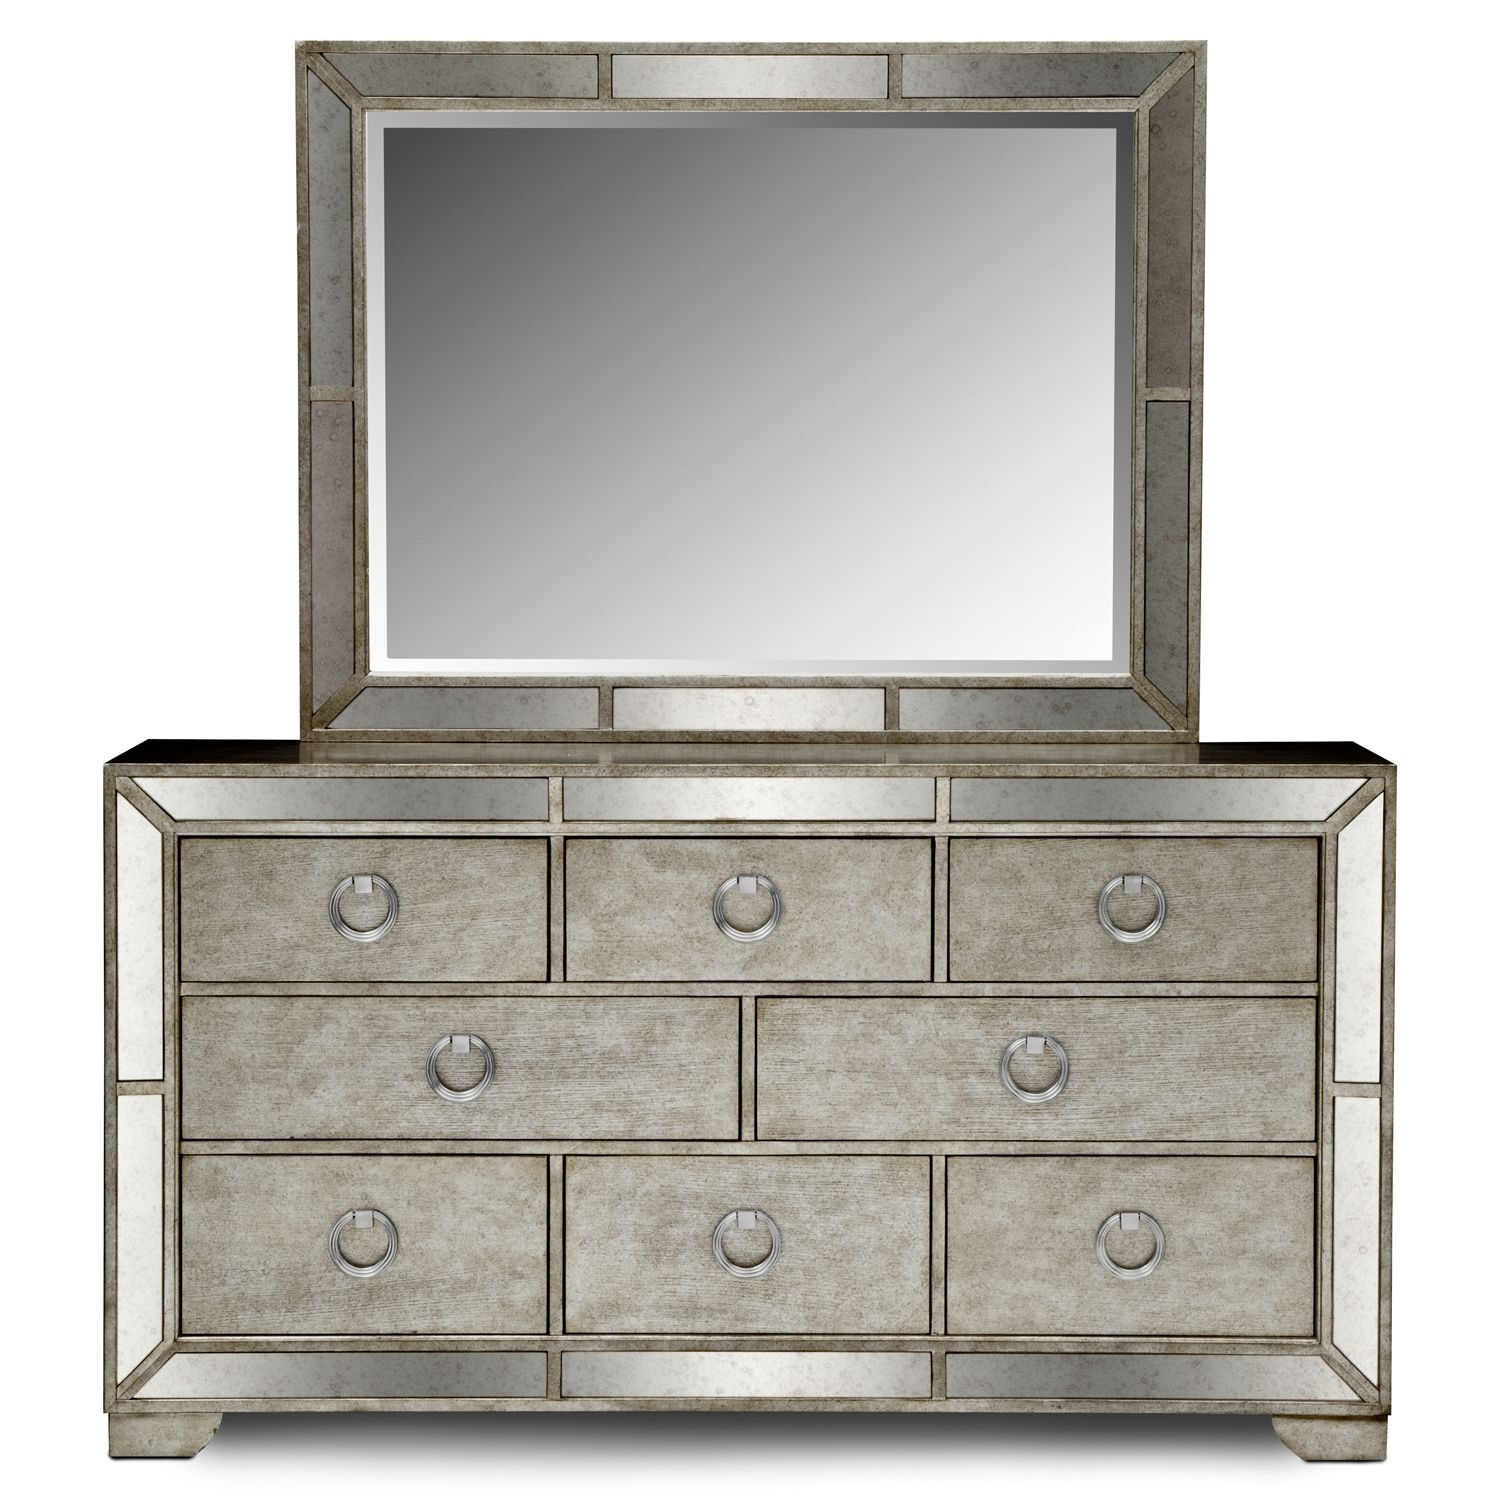 Meuble Angelina - Angelina Dresser Mirror American Signature Furniture Home [mjhdah]https://i.pinimg.com/originals/c5/7d/0a/c57d0a6415ddf01f8130926b14612fb0.jpg